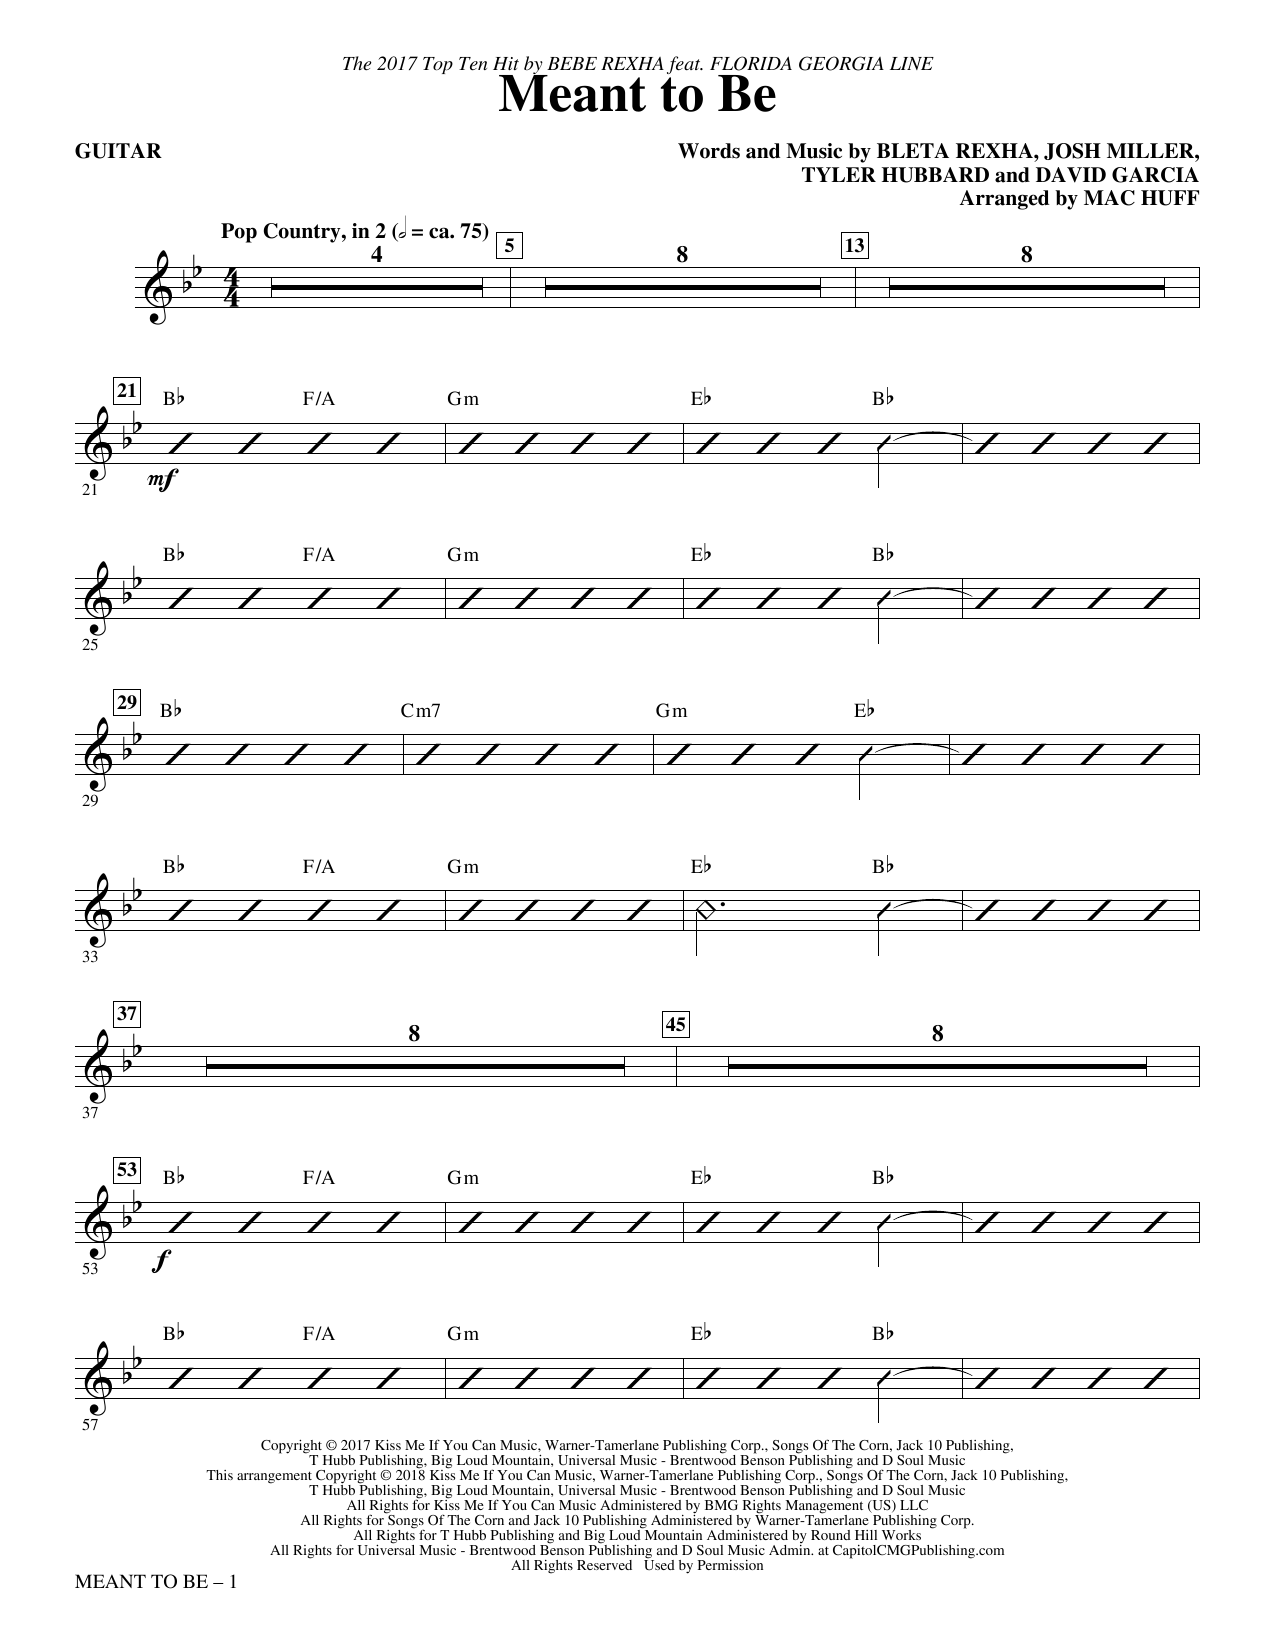 Bebe Rexha Meant to Be (Feat. Florida Georgia Line) (arr. Mac Huff) - Guitar sheet music notes and chords. Download Printable PDF.